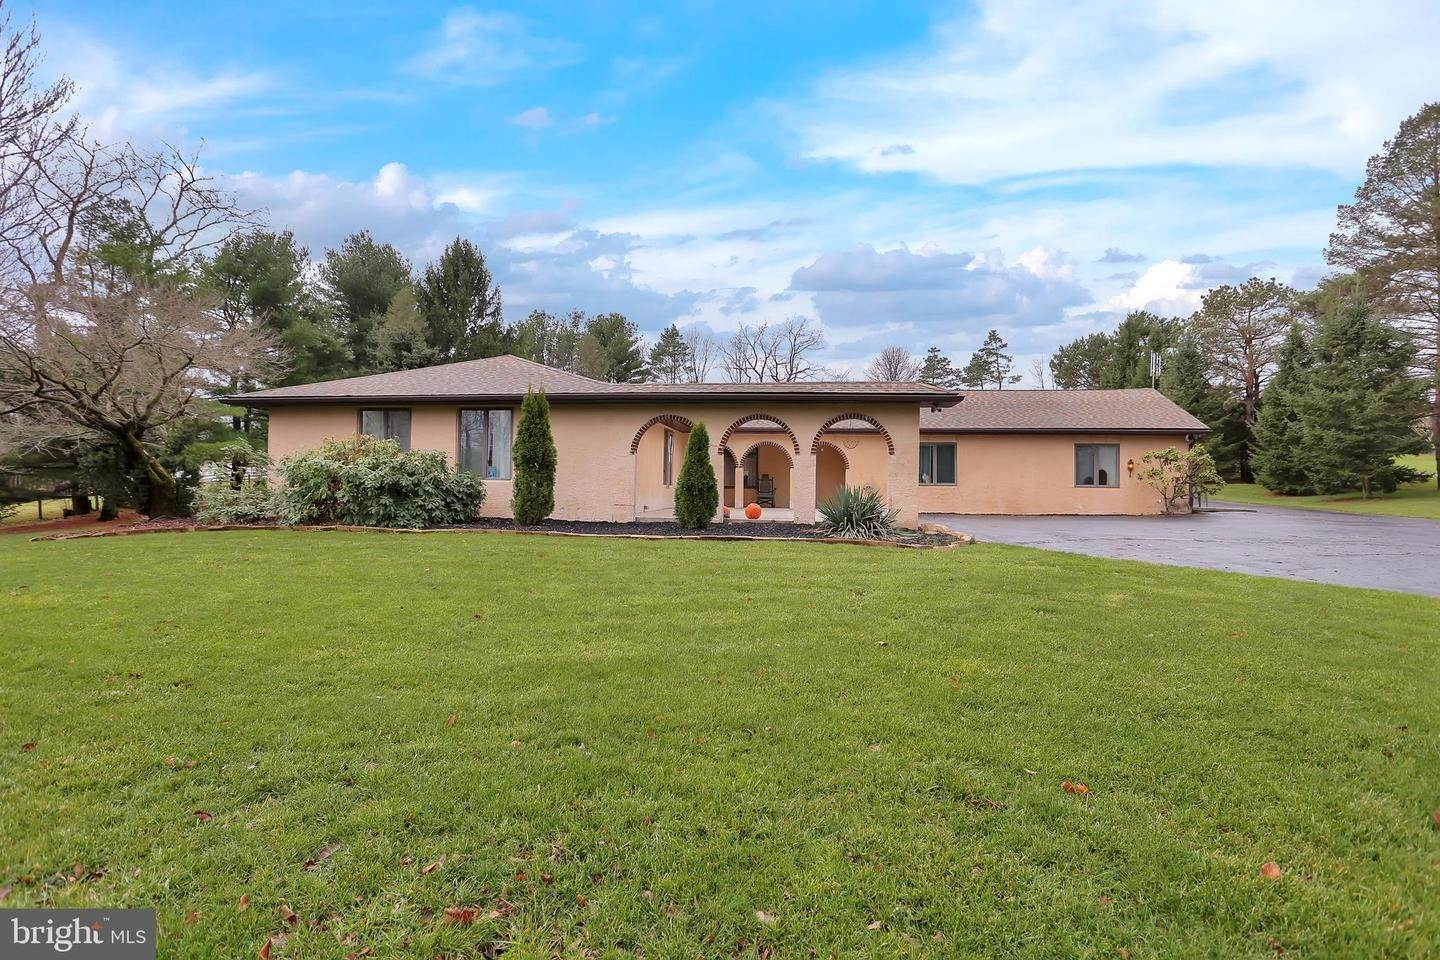 Residential for Sale at 3088 SEISHOLTZVILLE Road Macungie, Pennsylvania 18062 United States